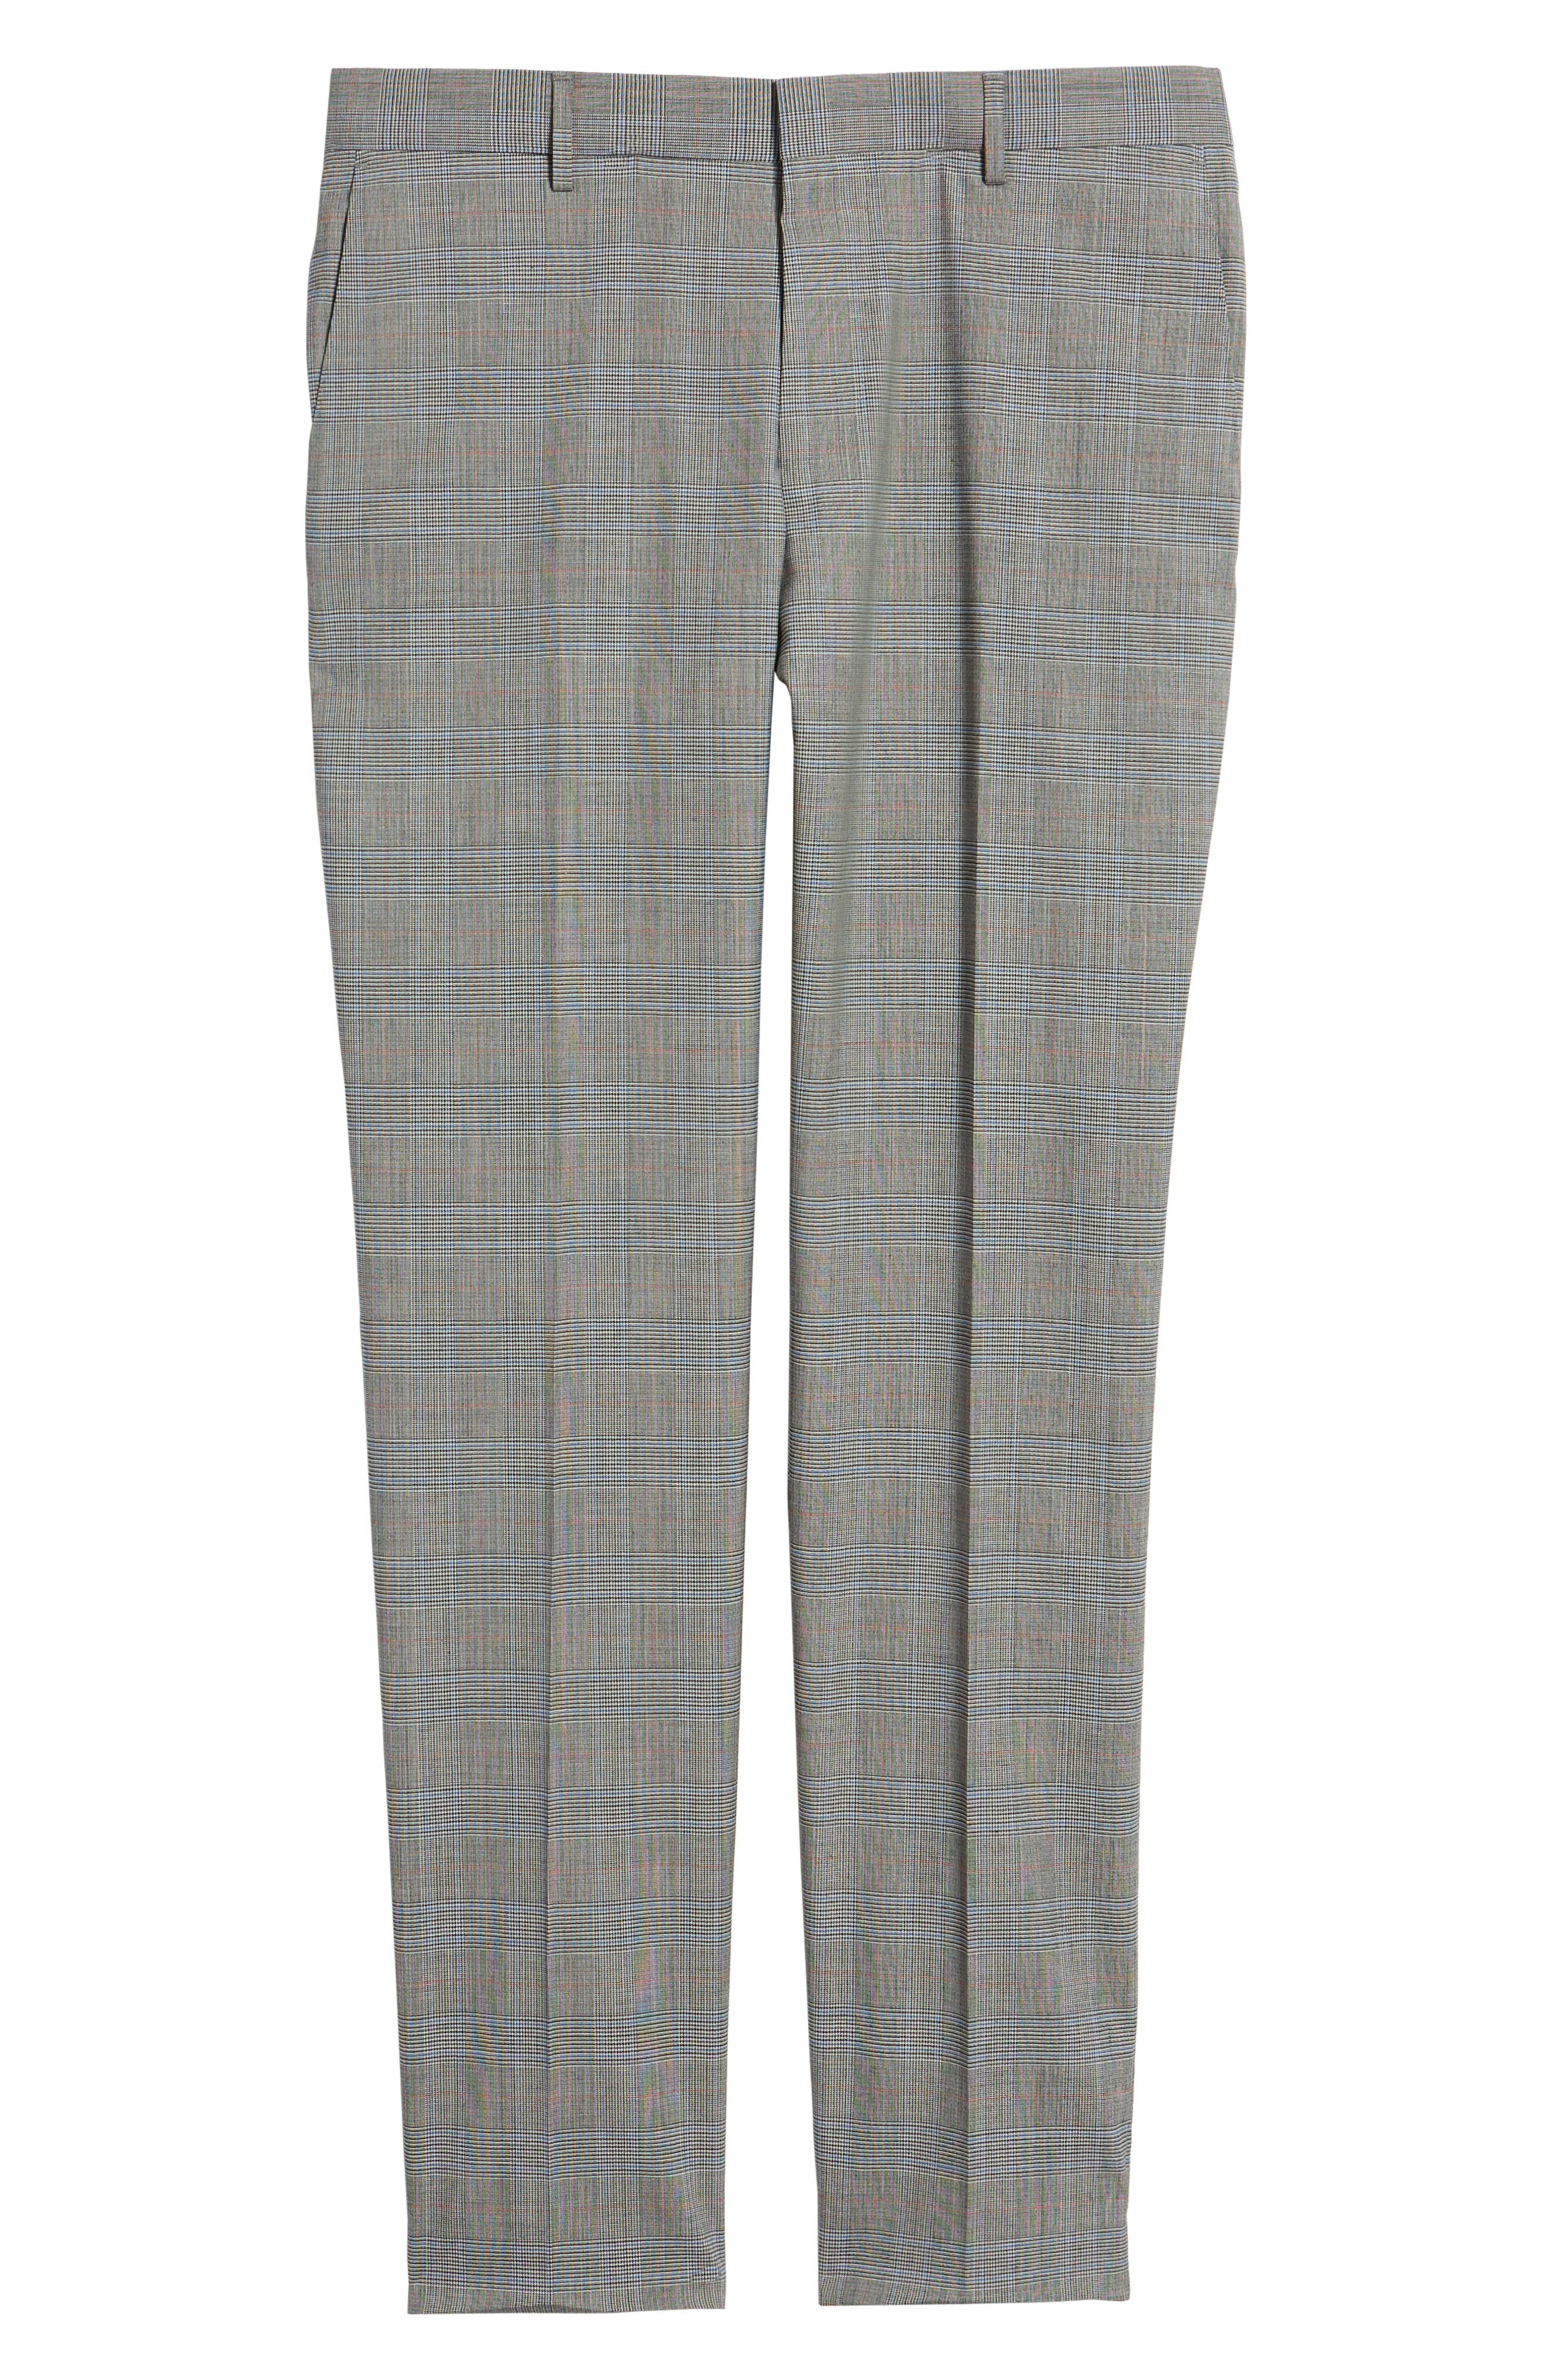 Benso Flat Front Plaid Wool Blend Trousers,                             Alternate thumbnail 6, color,                             061